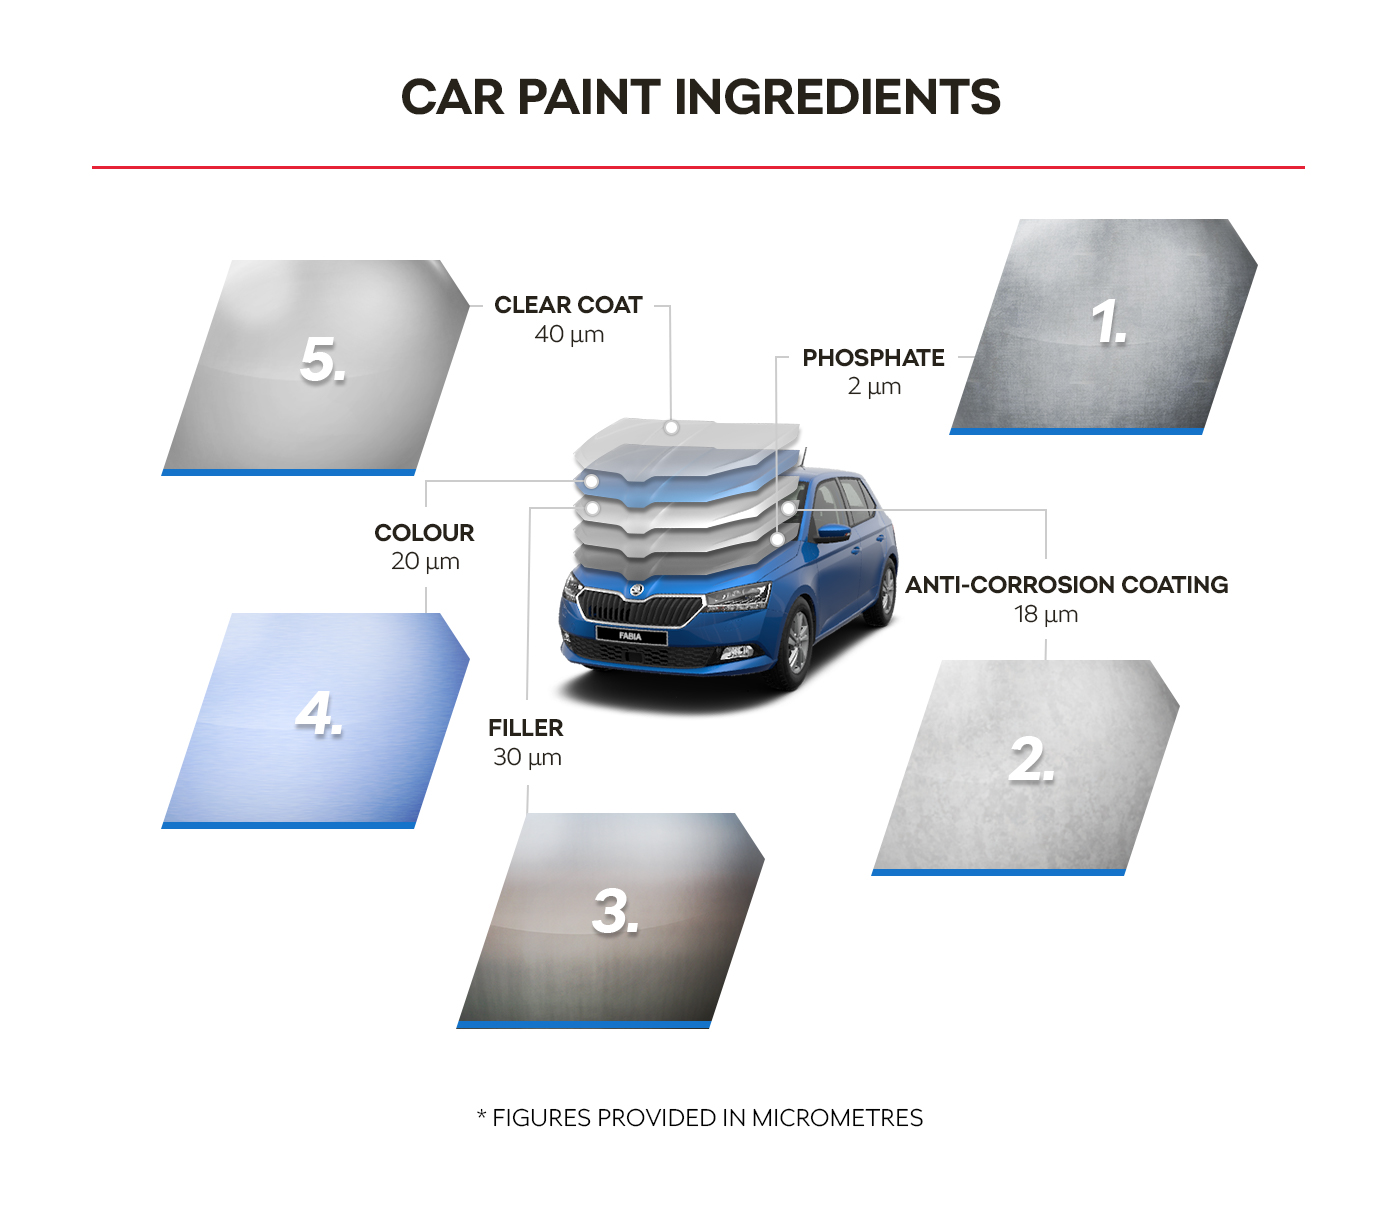 Car paint ingredients